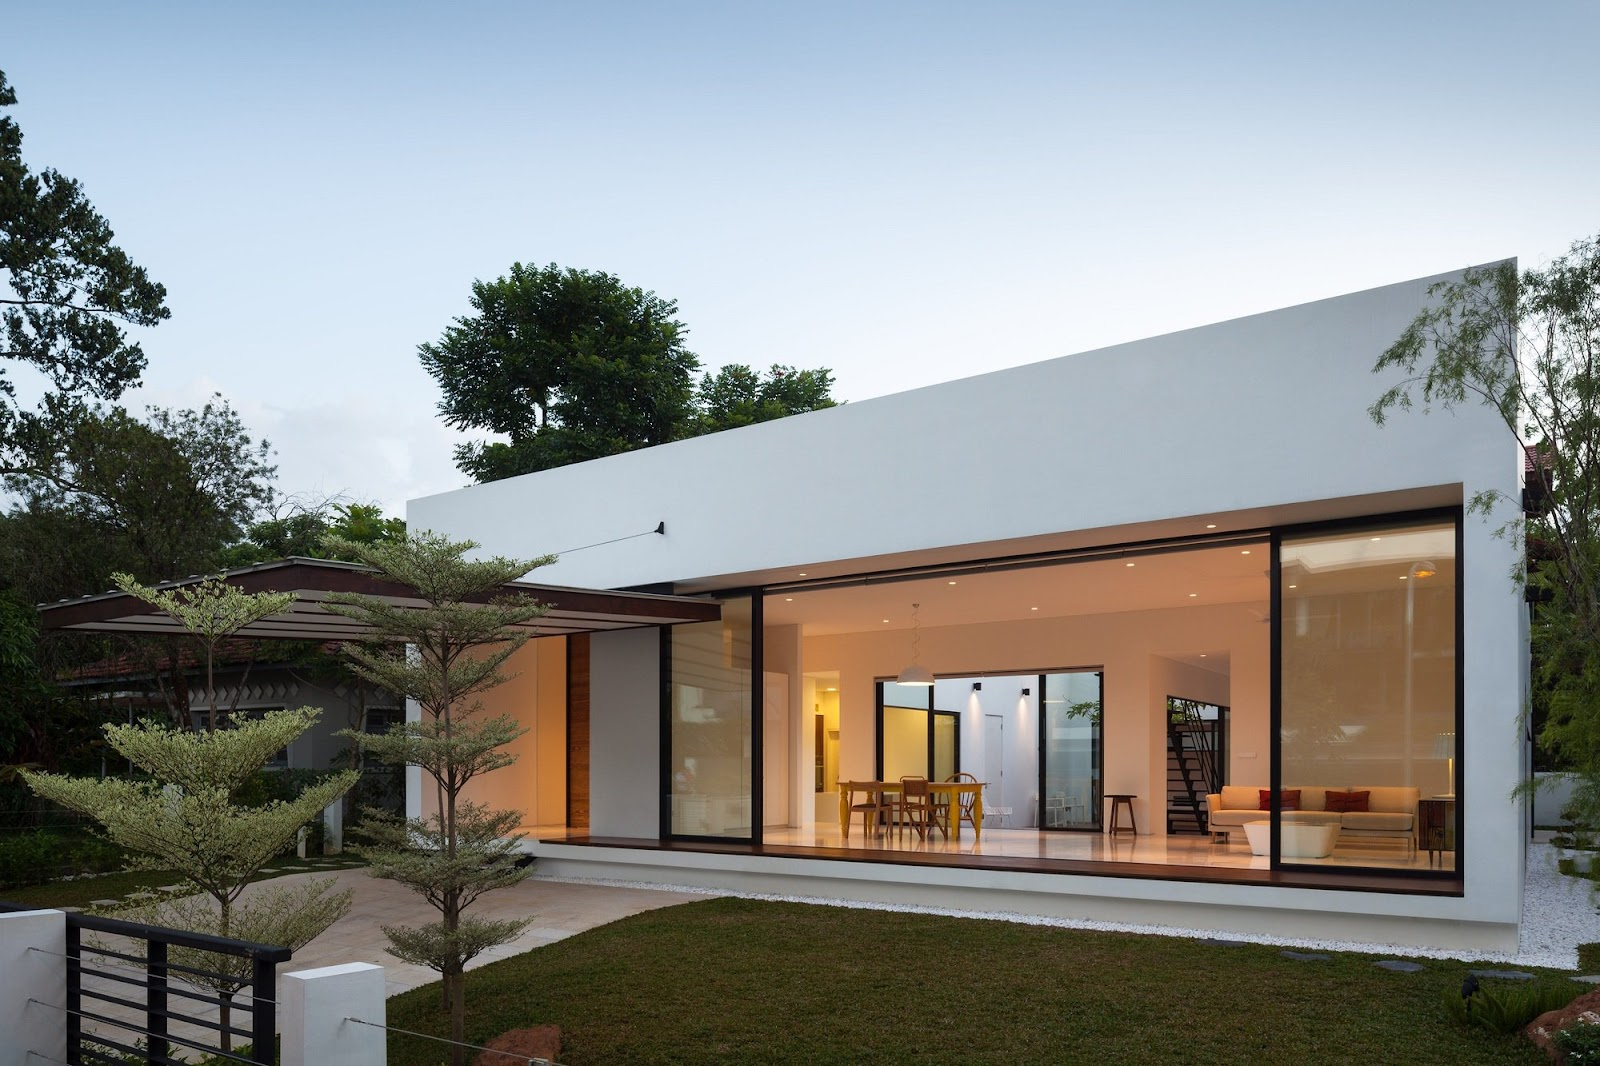 50 more singapore houses urban architecture now - Architecture Design Houses